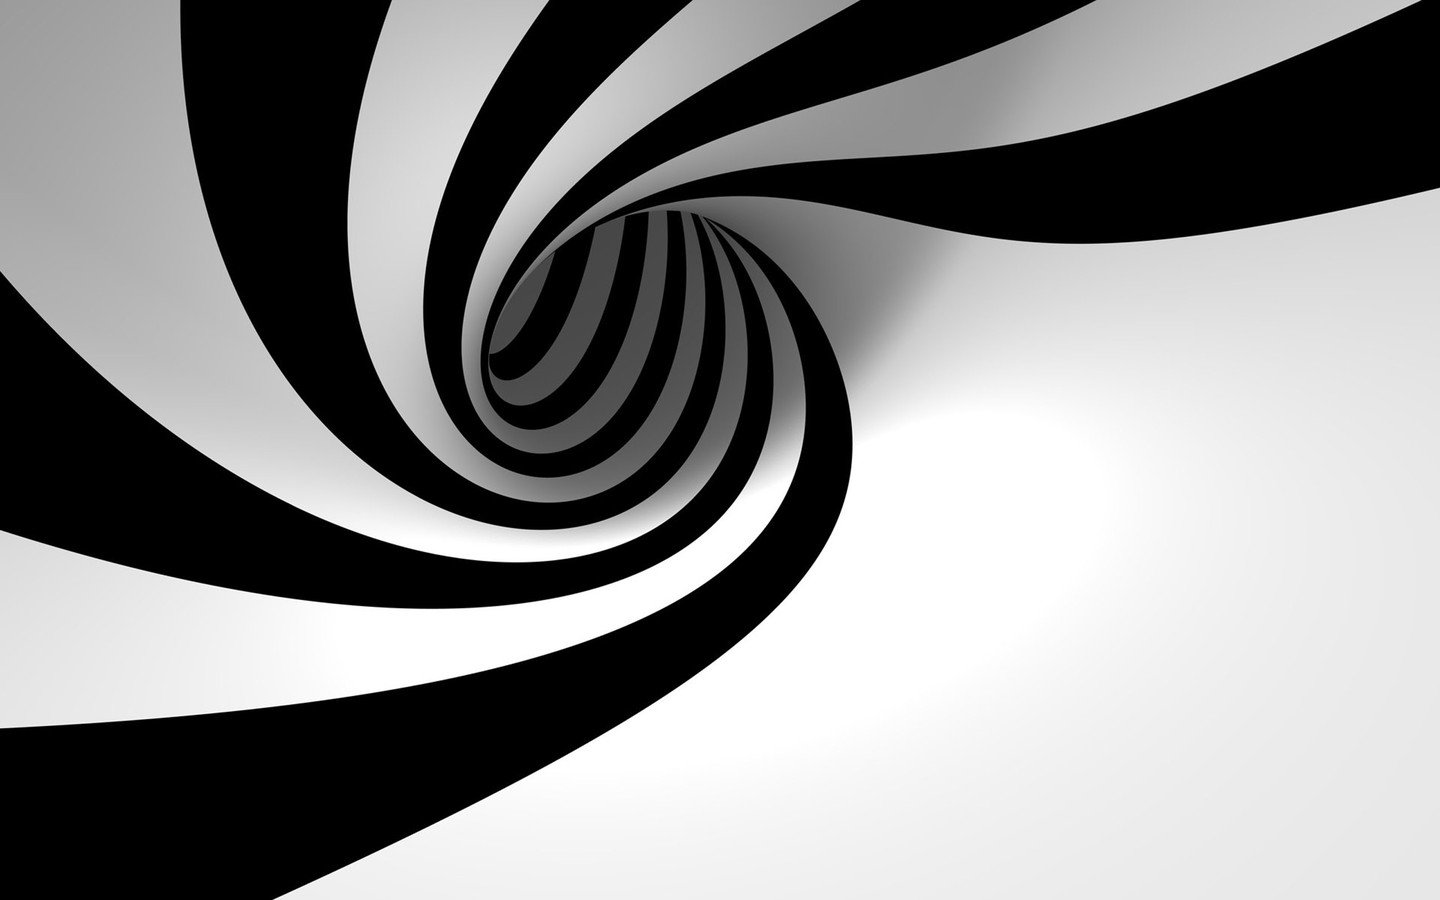 Black And White Abstract Wallpaper 3654 Hd Wallpapers in Abstract 1440x900